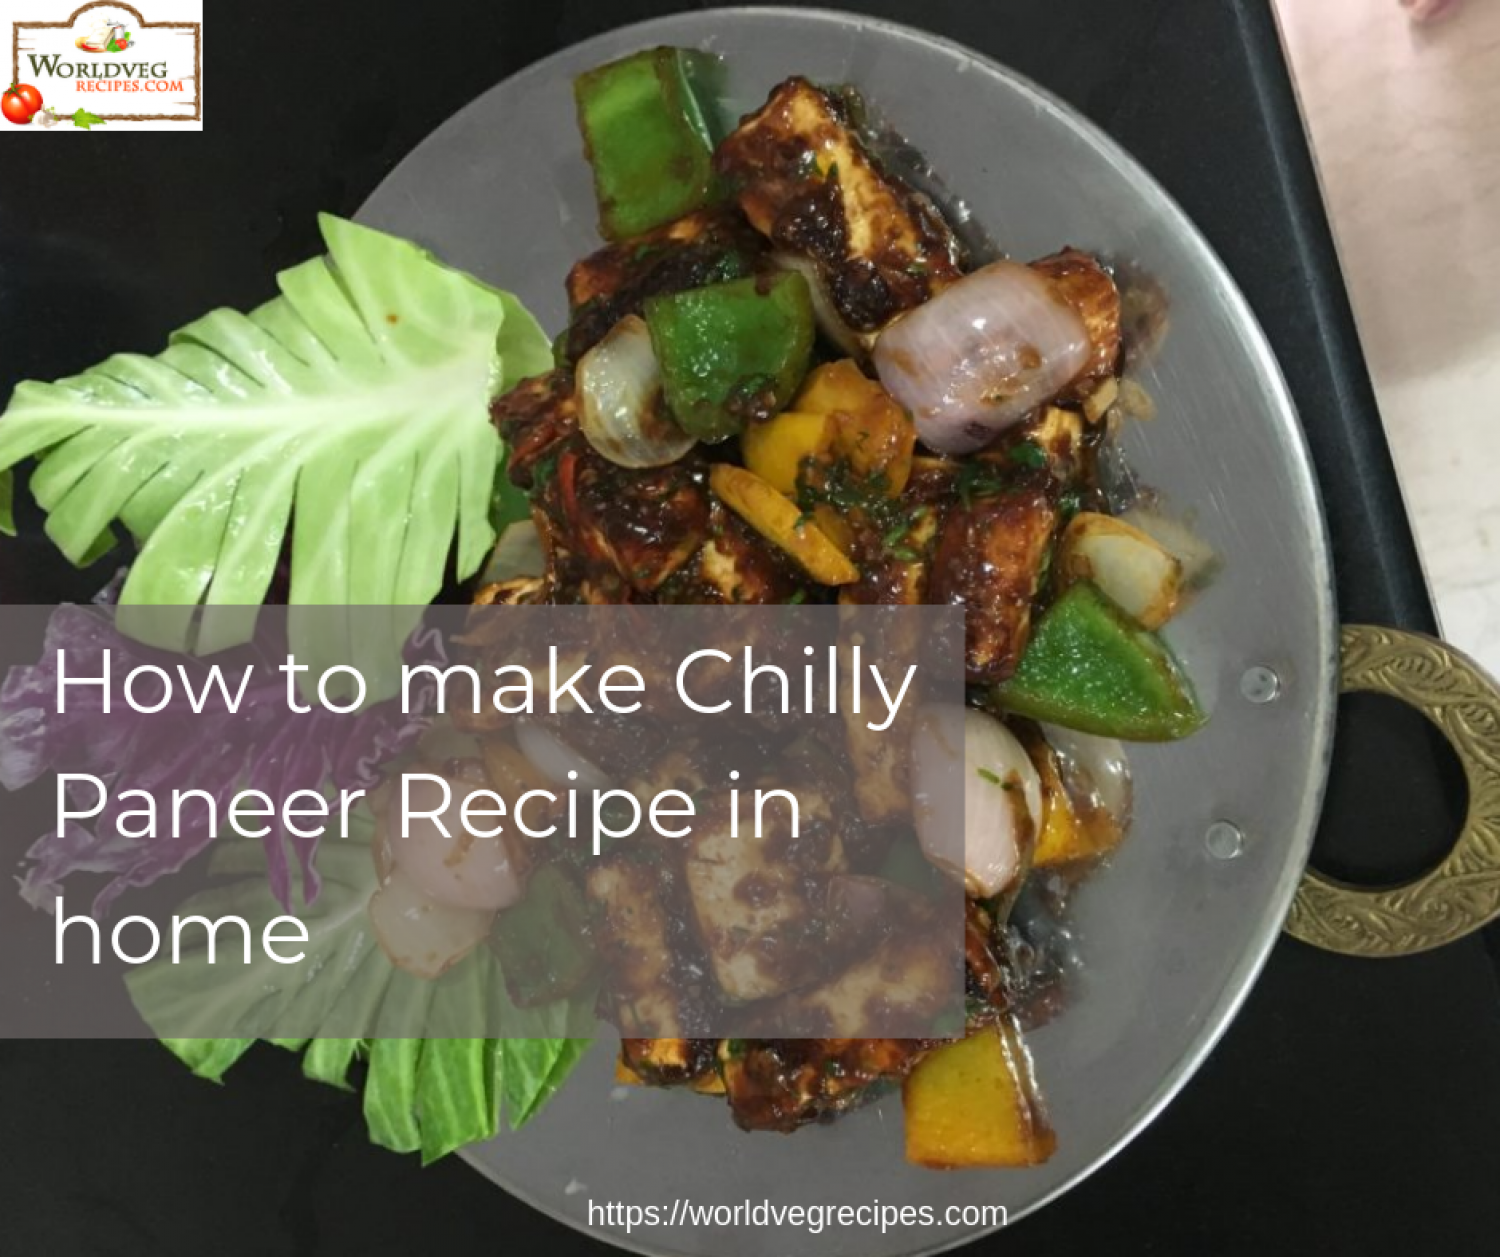 How to make Chilly Paneer Recipe in home Infographic